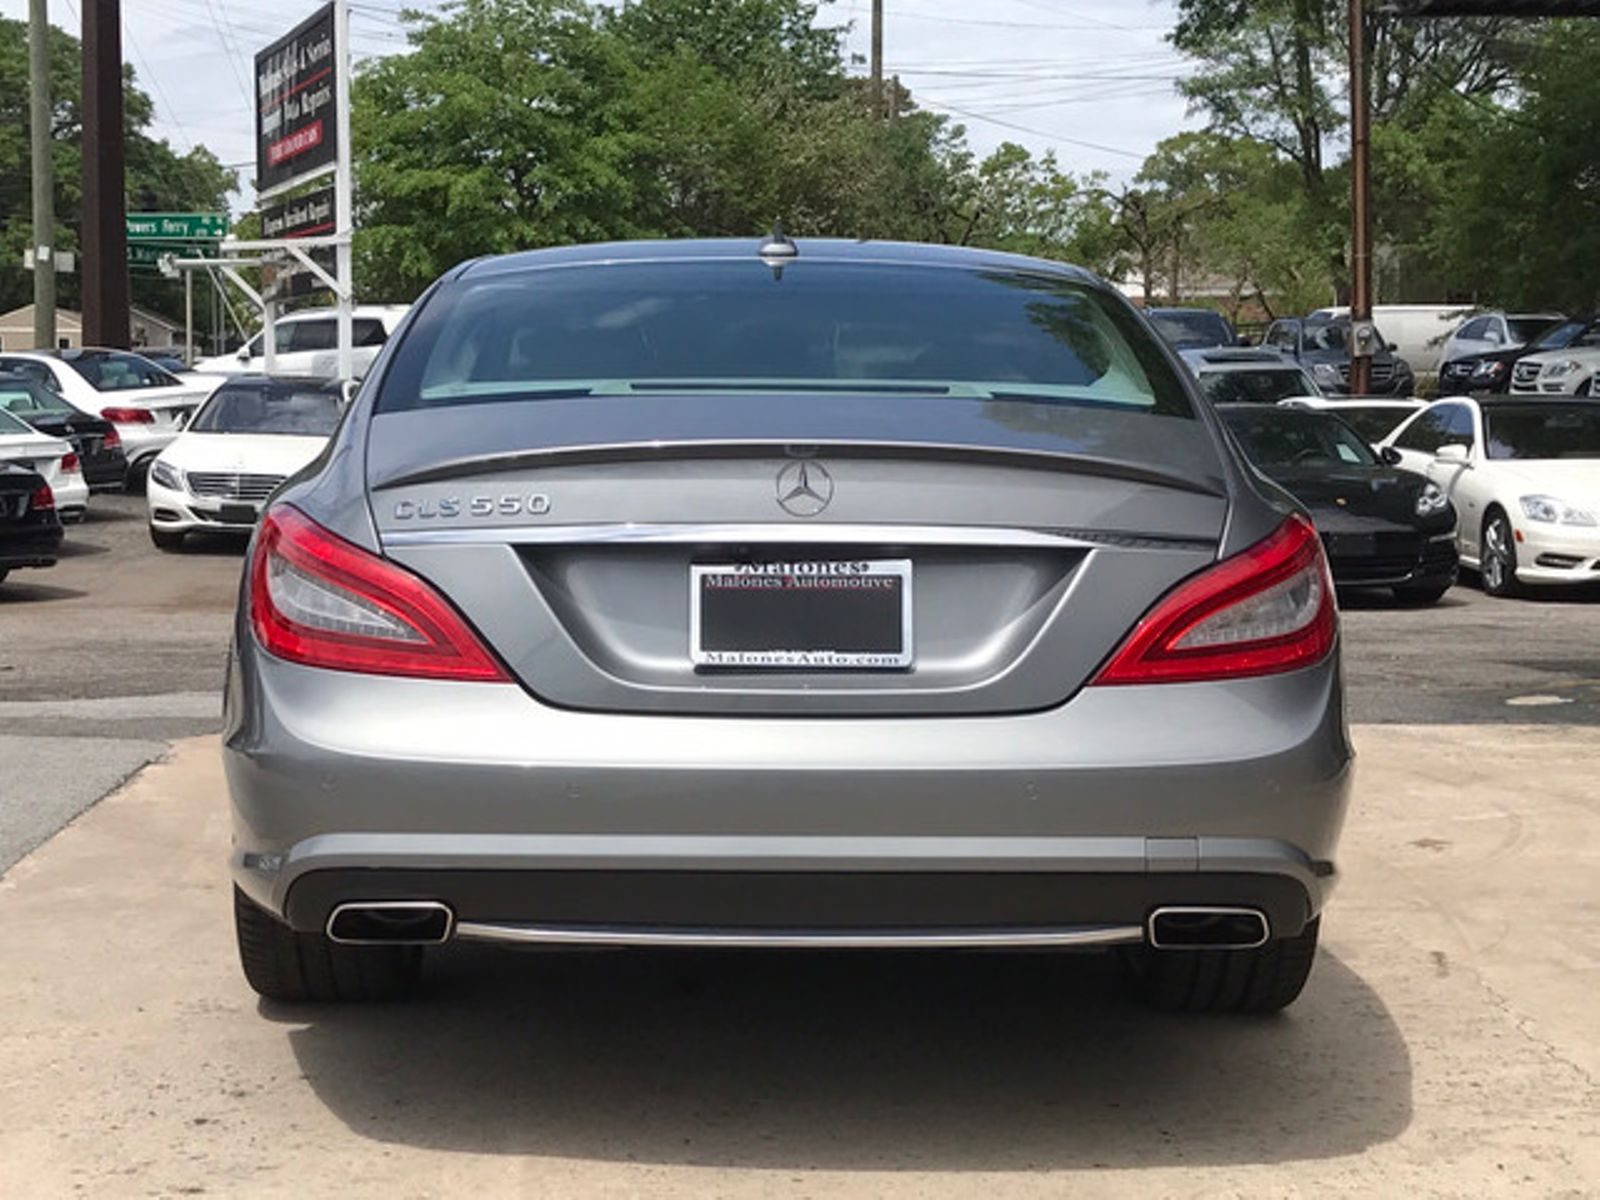 2014 mercedes benz cls 550 amg keyless go blind spot for Mercedes benz cls 550